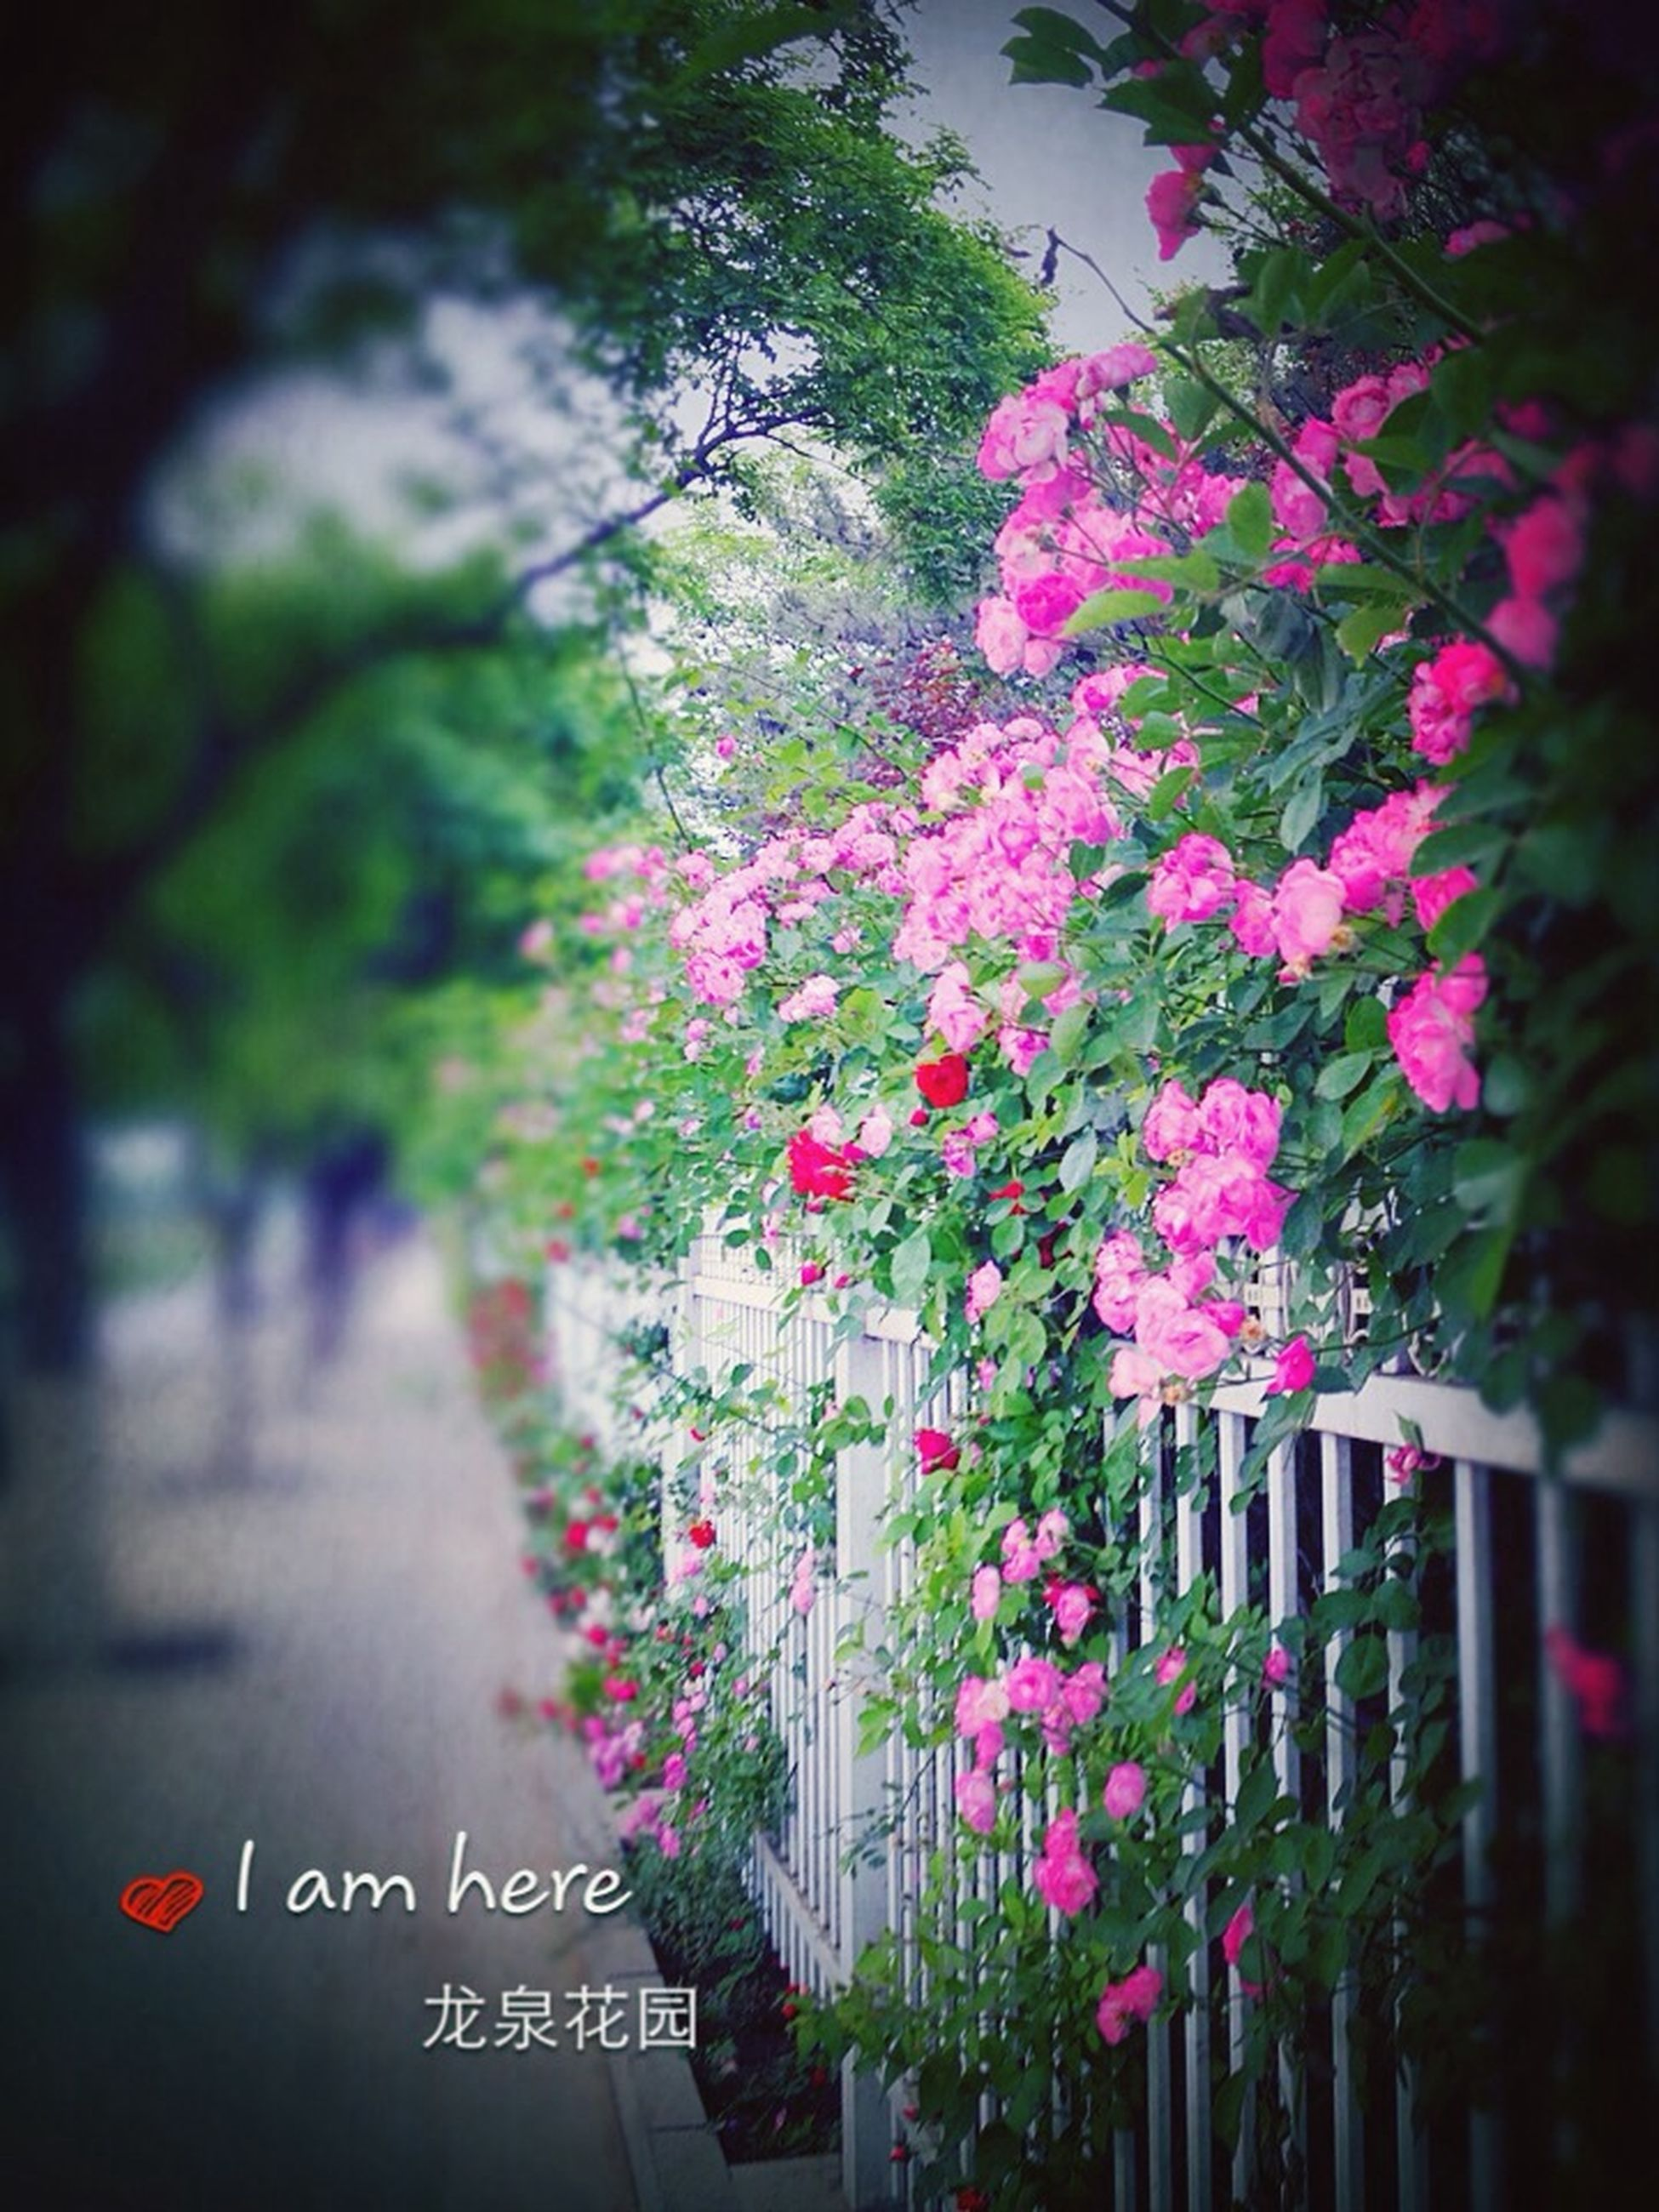 flower, growth, tree, focus on foreground, beauty in nature, freshness, nature, park - man made space, plant, fragility, blooming, pink color, petal, day, leaf, outdoors, red, selective focus, in bloom, blossom